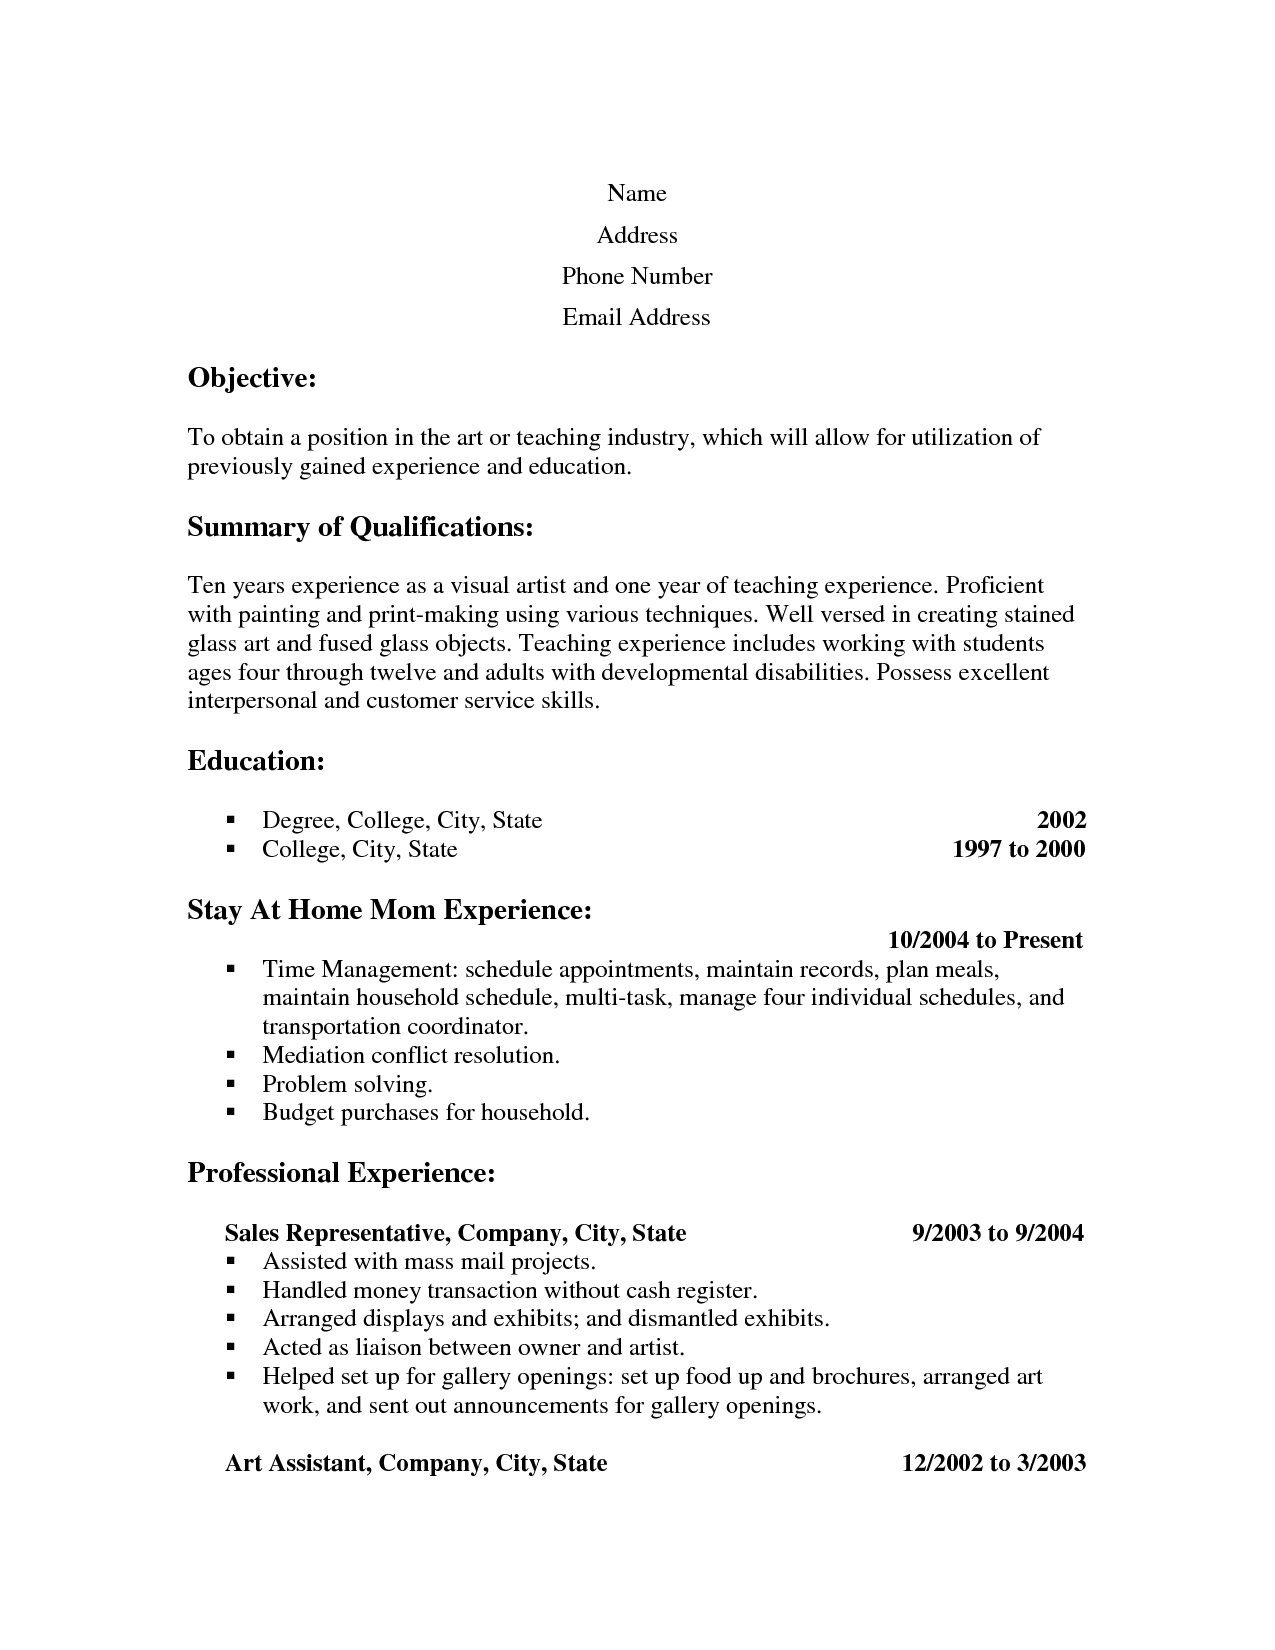 Resume Ideas for Stay at Home Moms - Stay at Home Mom Resume Sample Hirnsturm